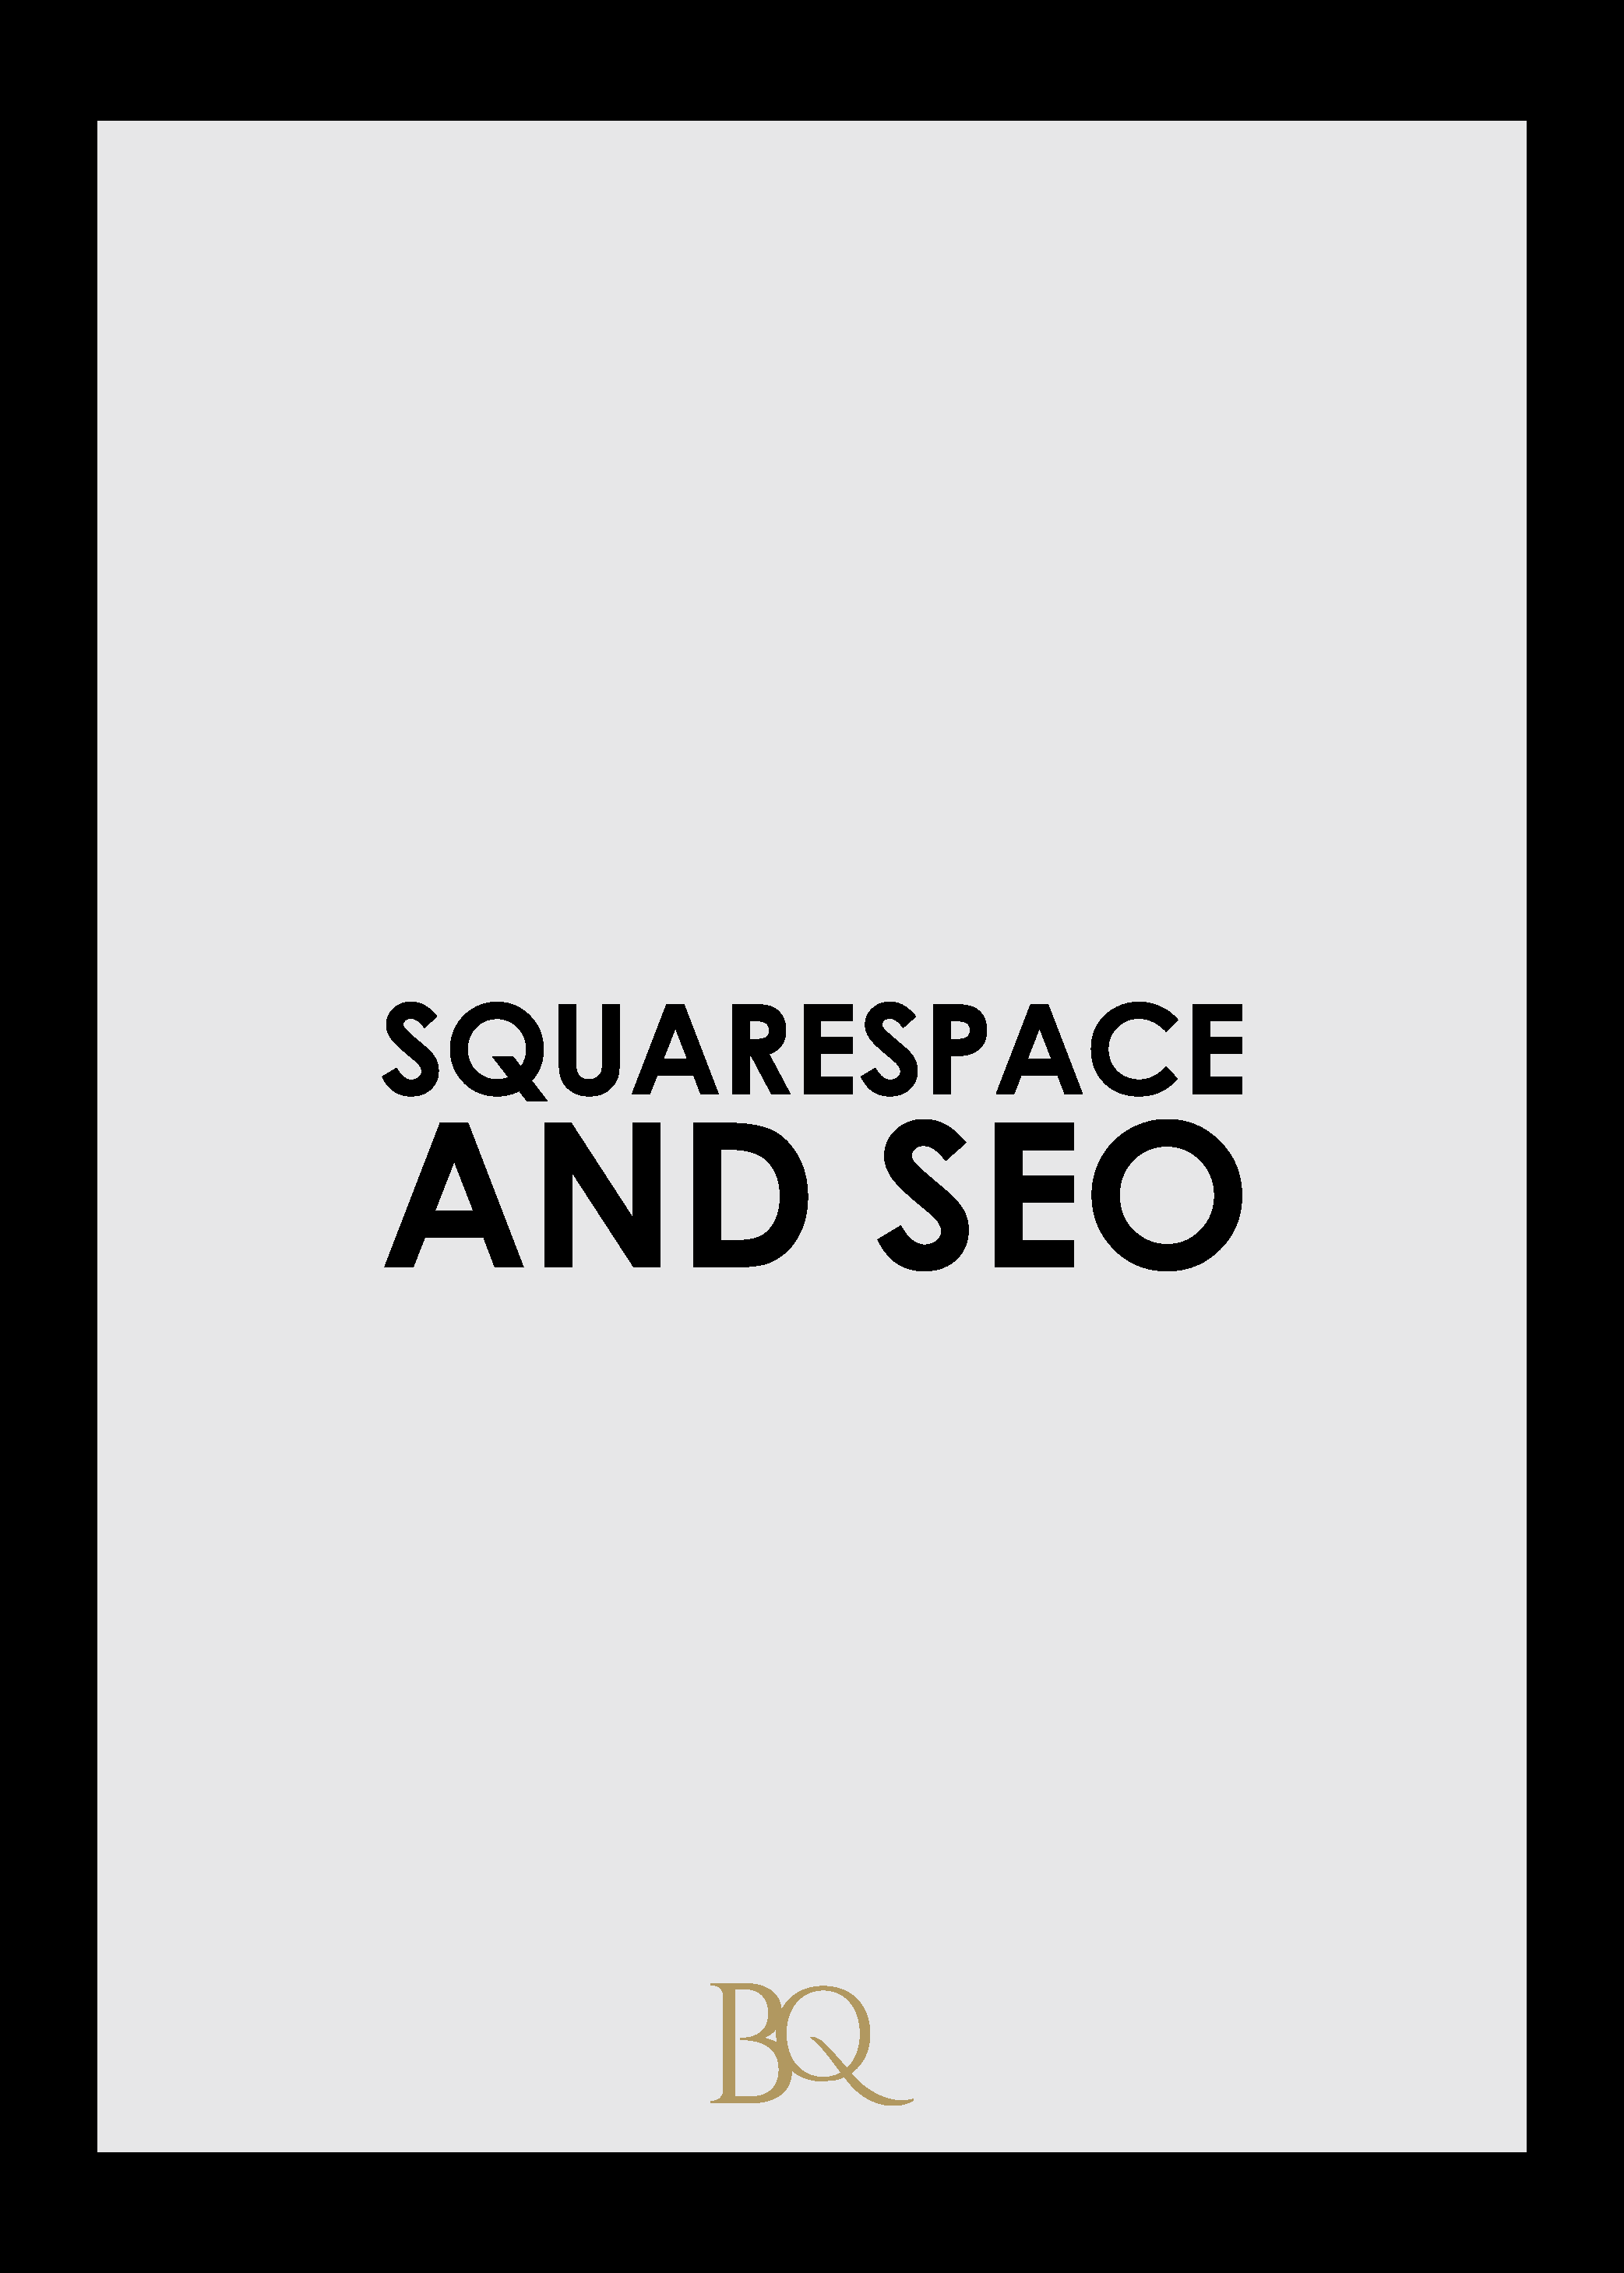 Debunking some Myth about poor SEO on Squarespace...